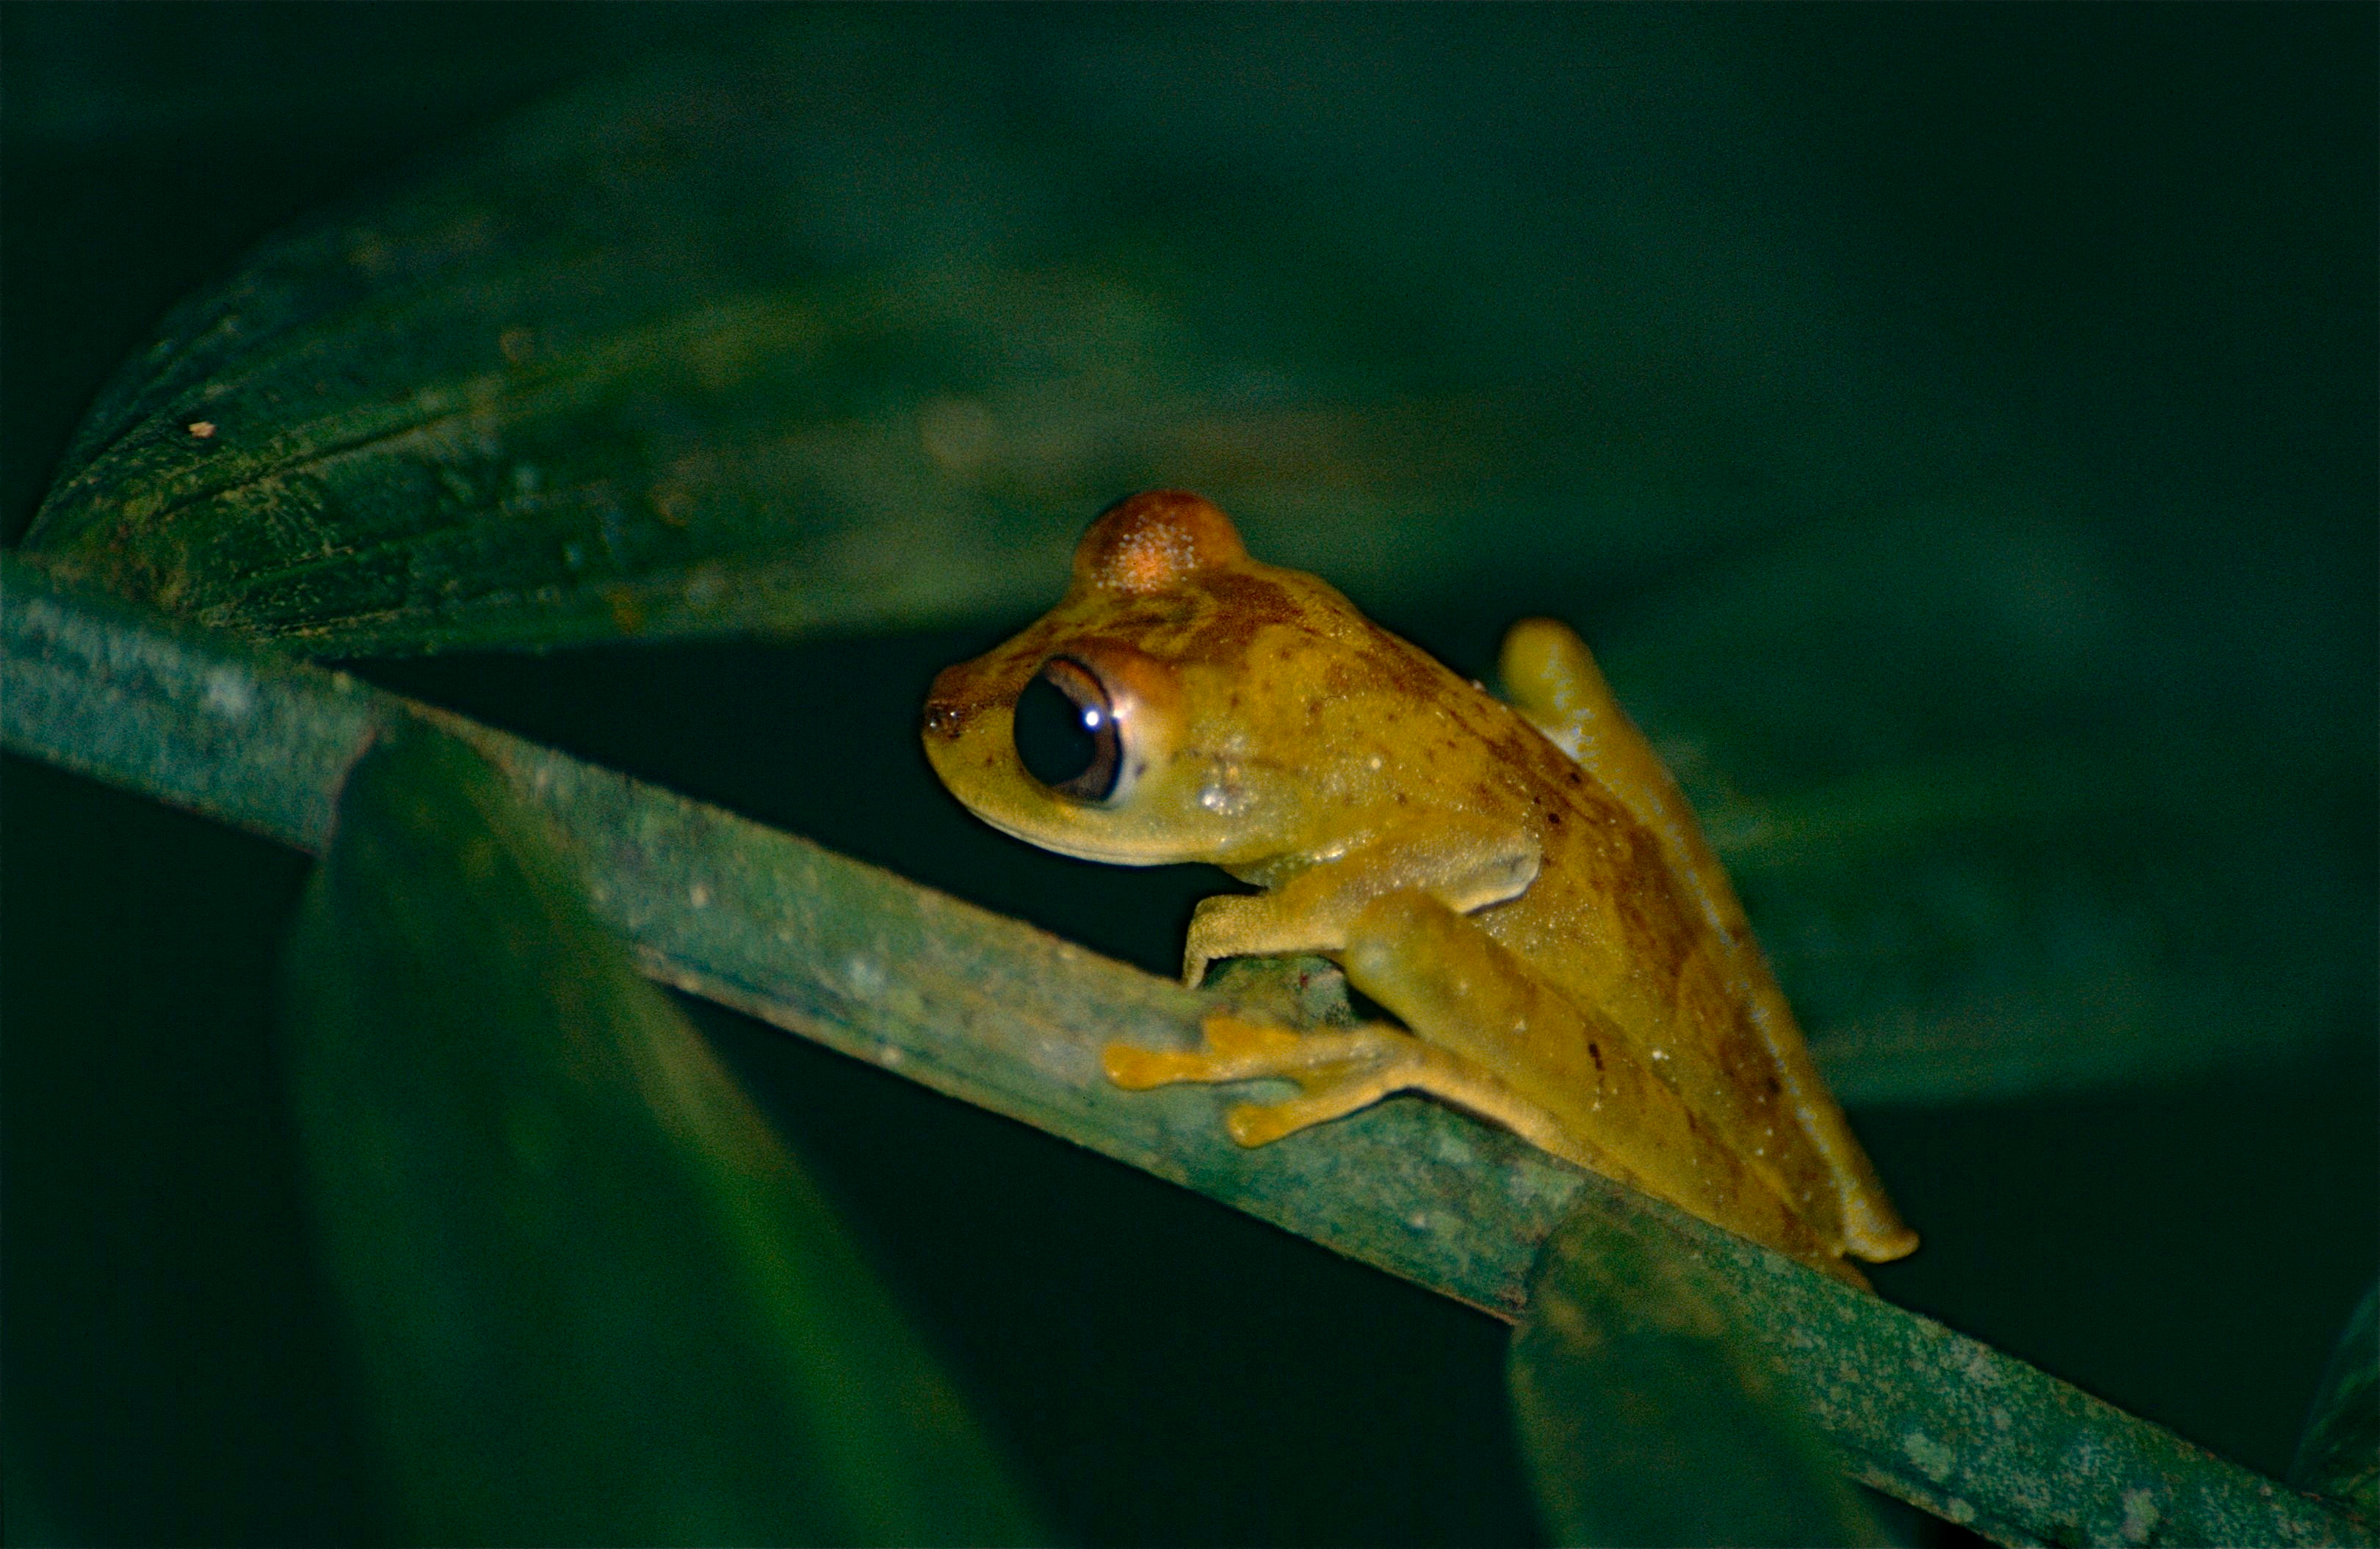 Image of Gunther's banded treefrog